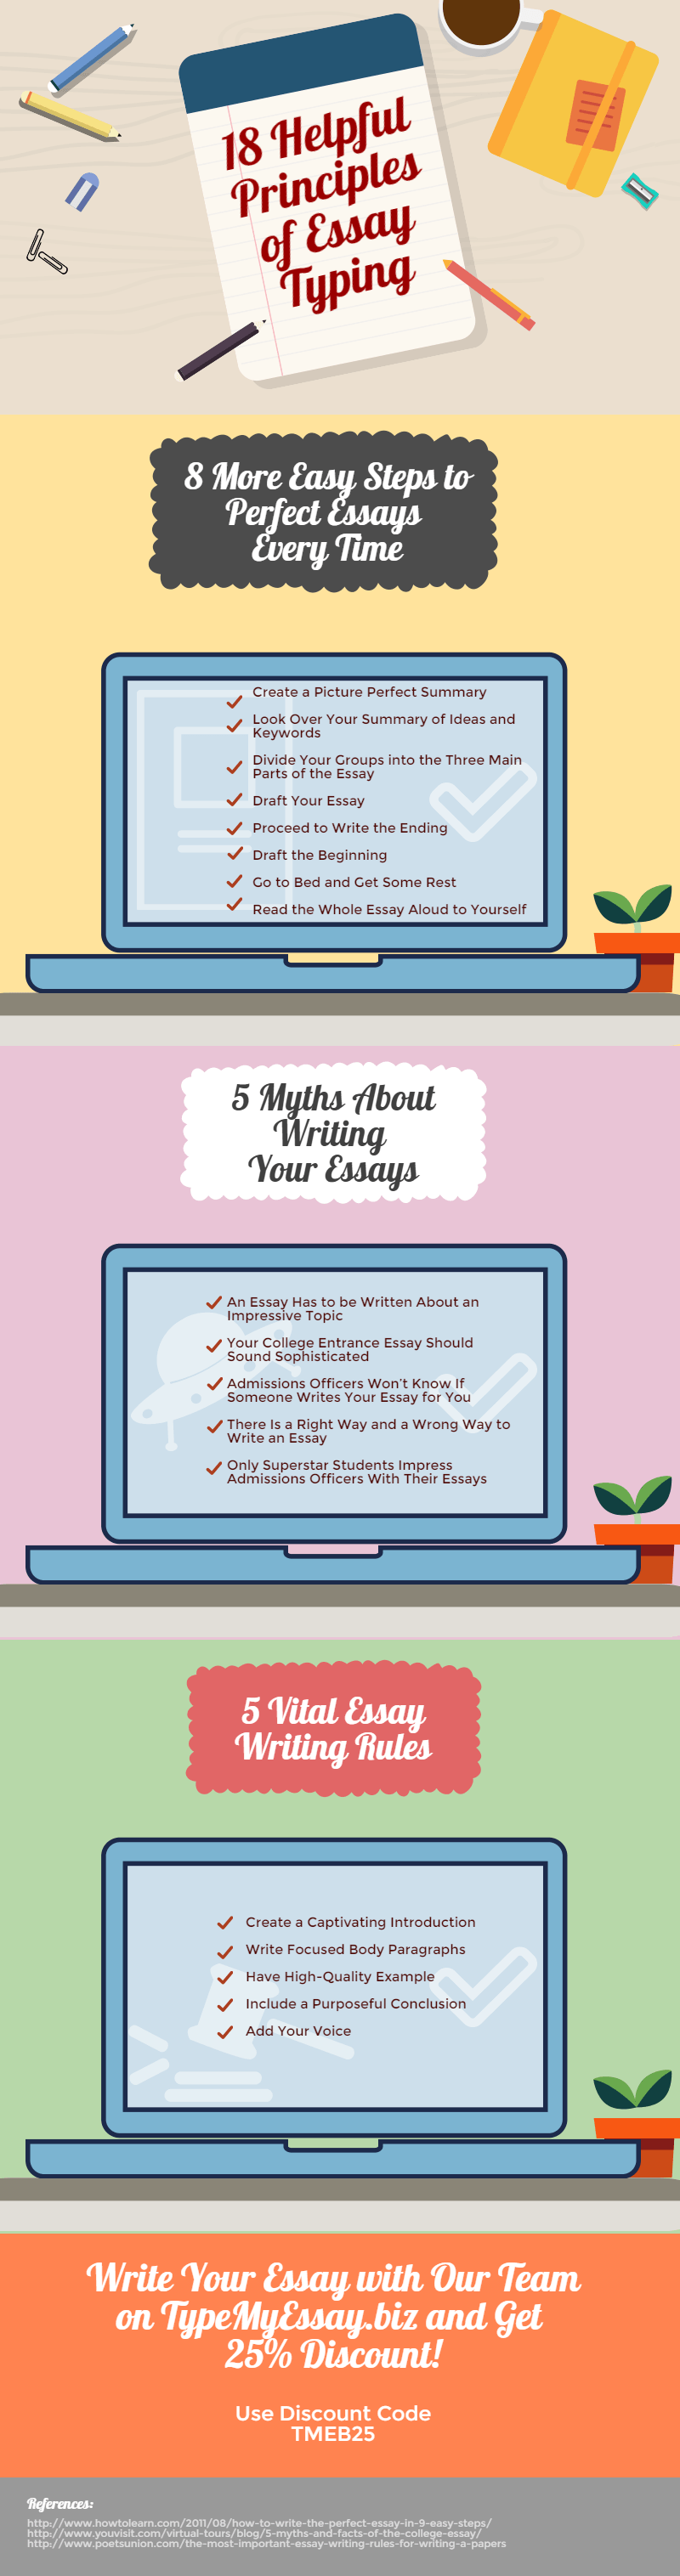 18 helpful principles of essay writing infographic e learning 18 helpful principles of essay writing infographic